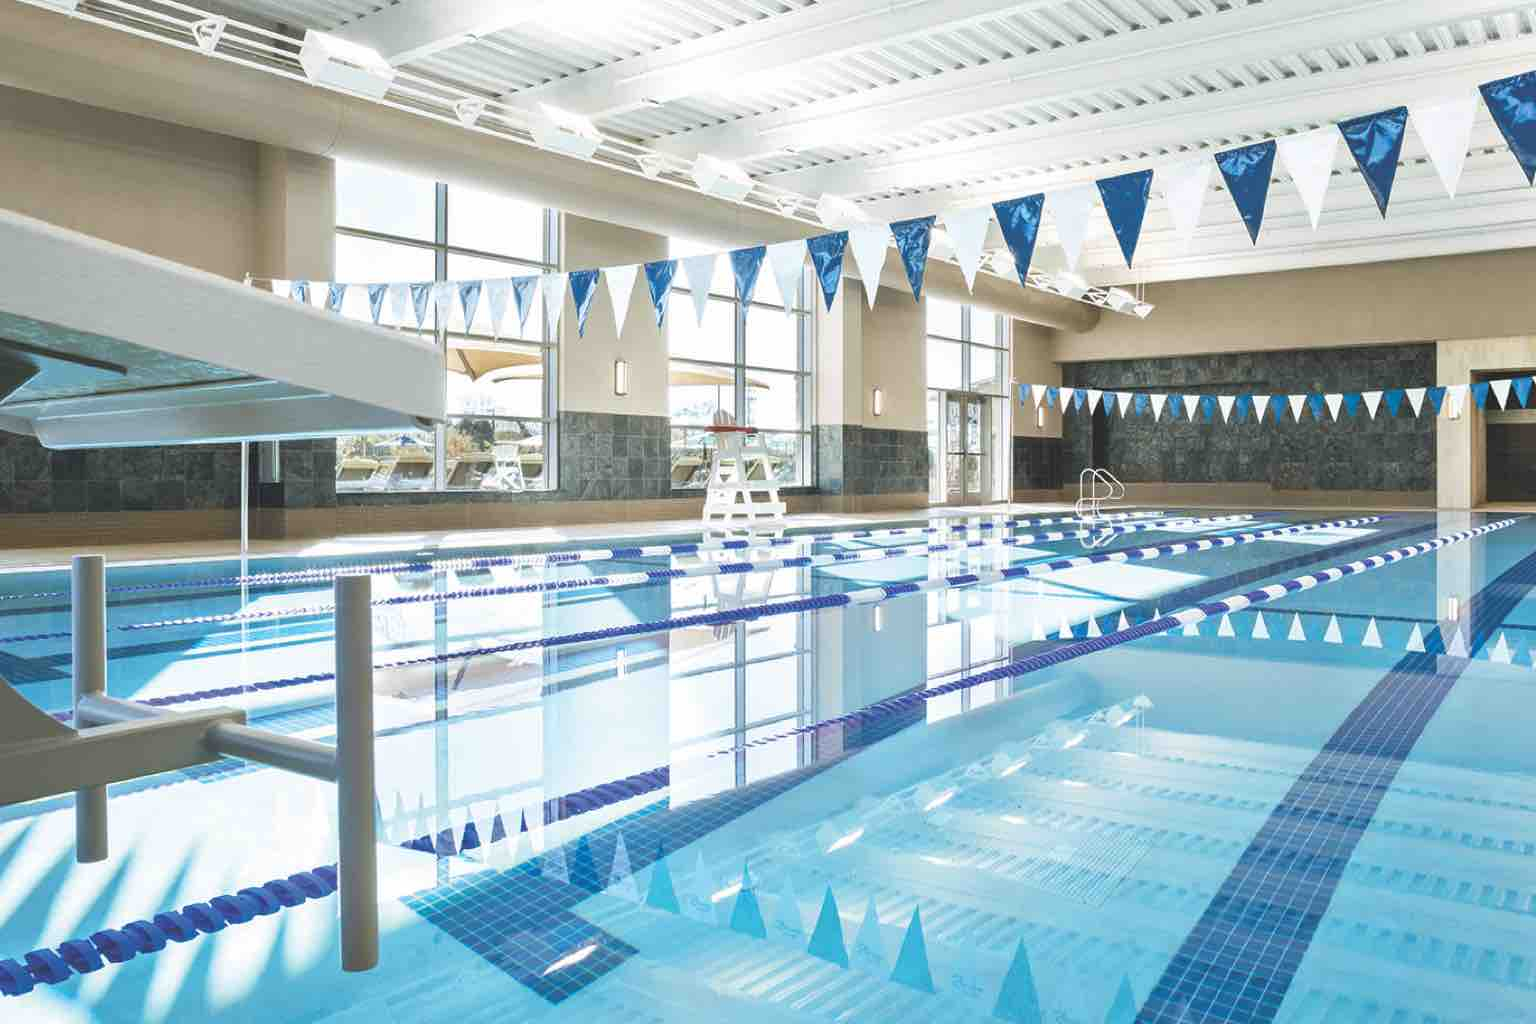 A brightly lit indoor lap pool with blue and white banners strung overhead